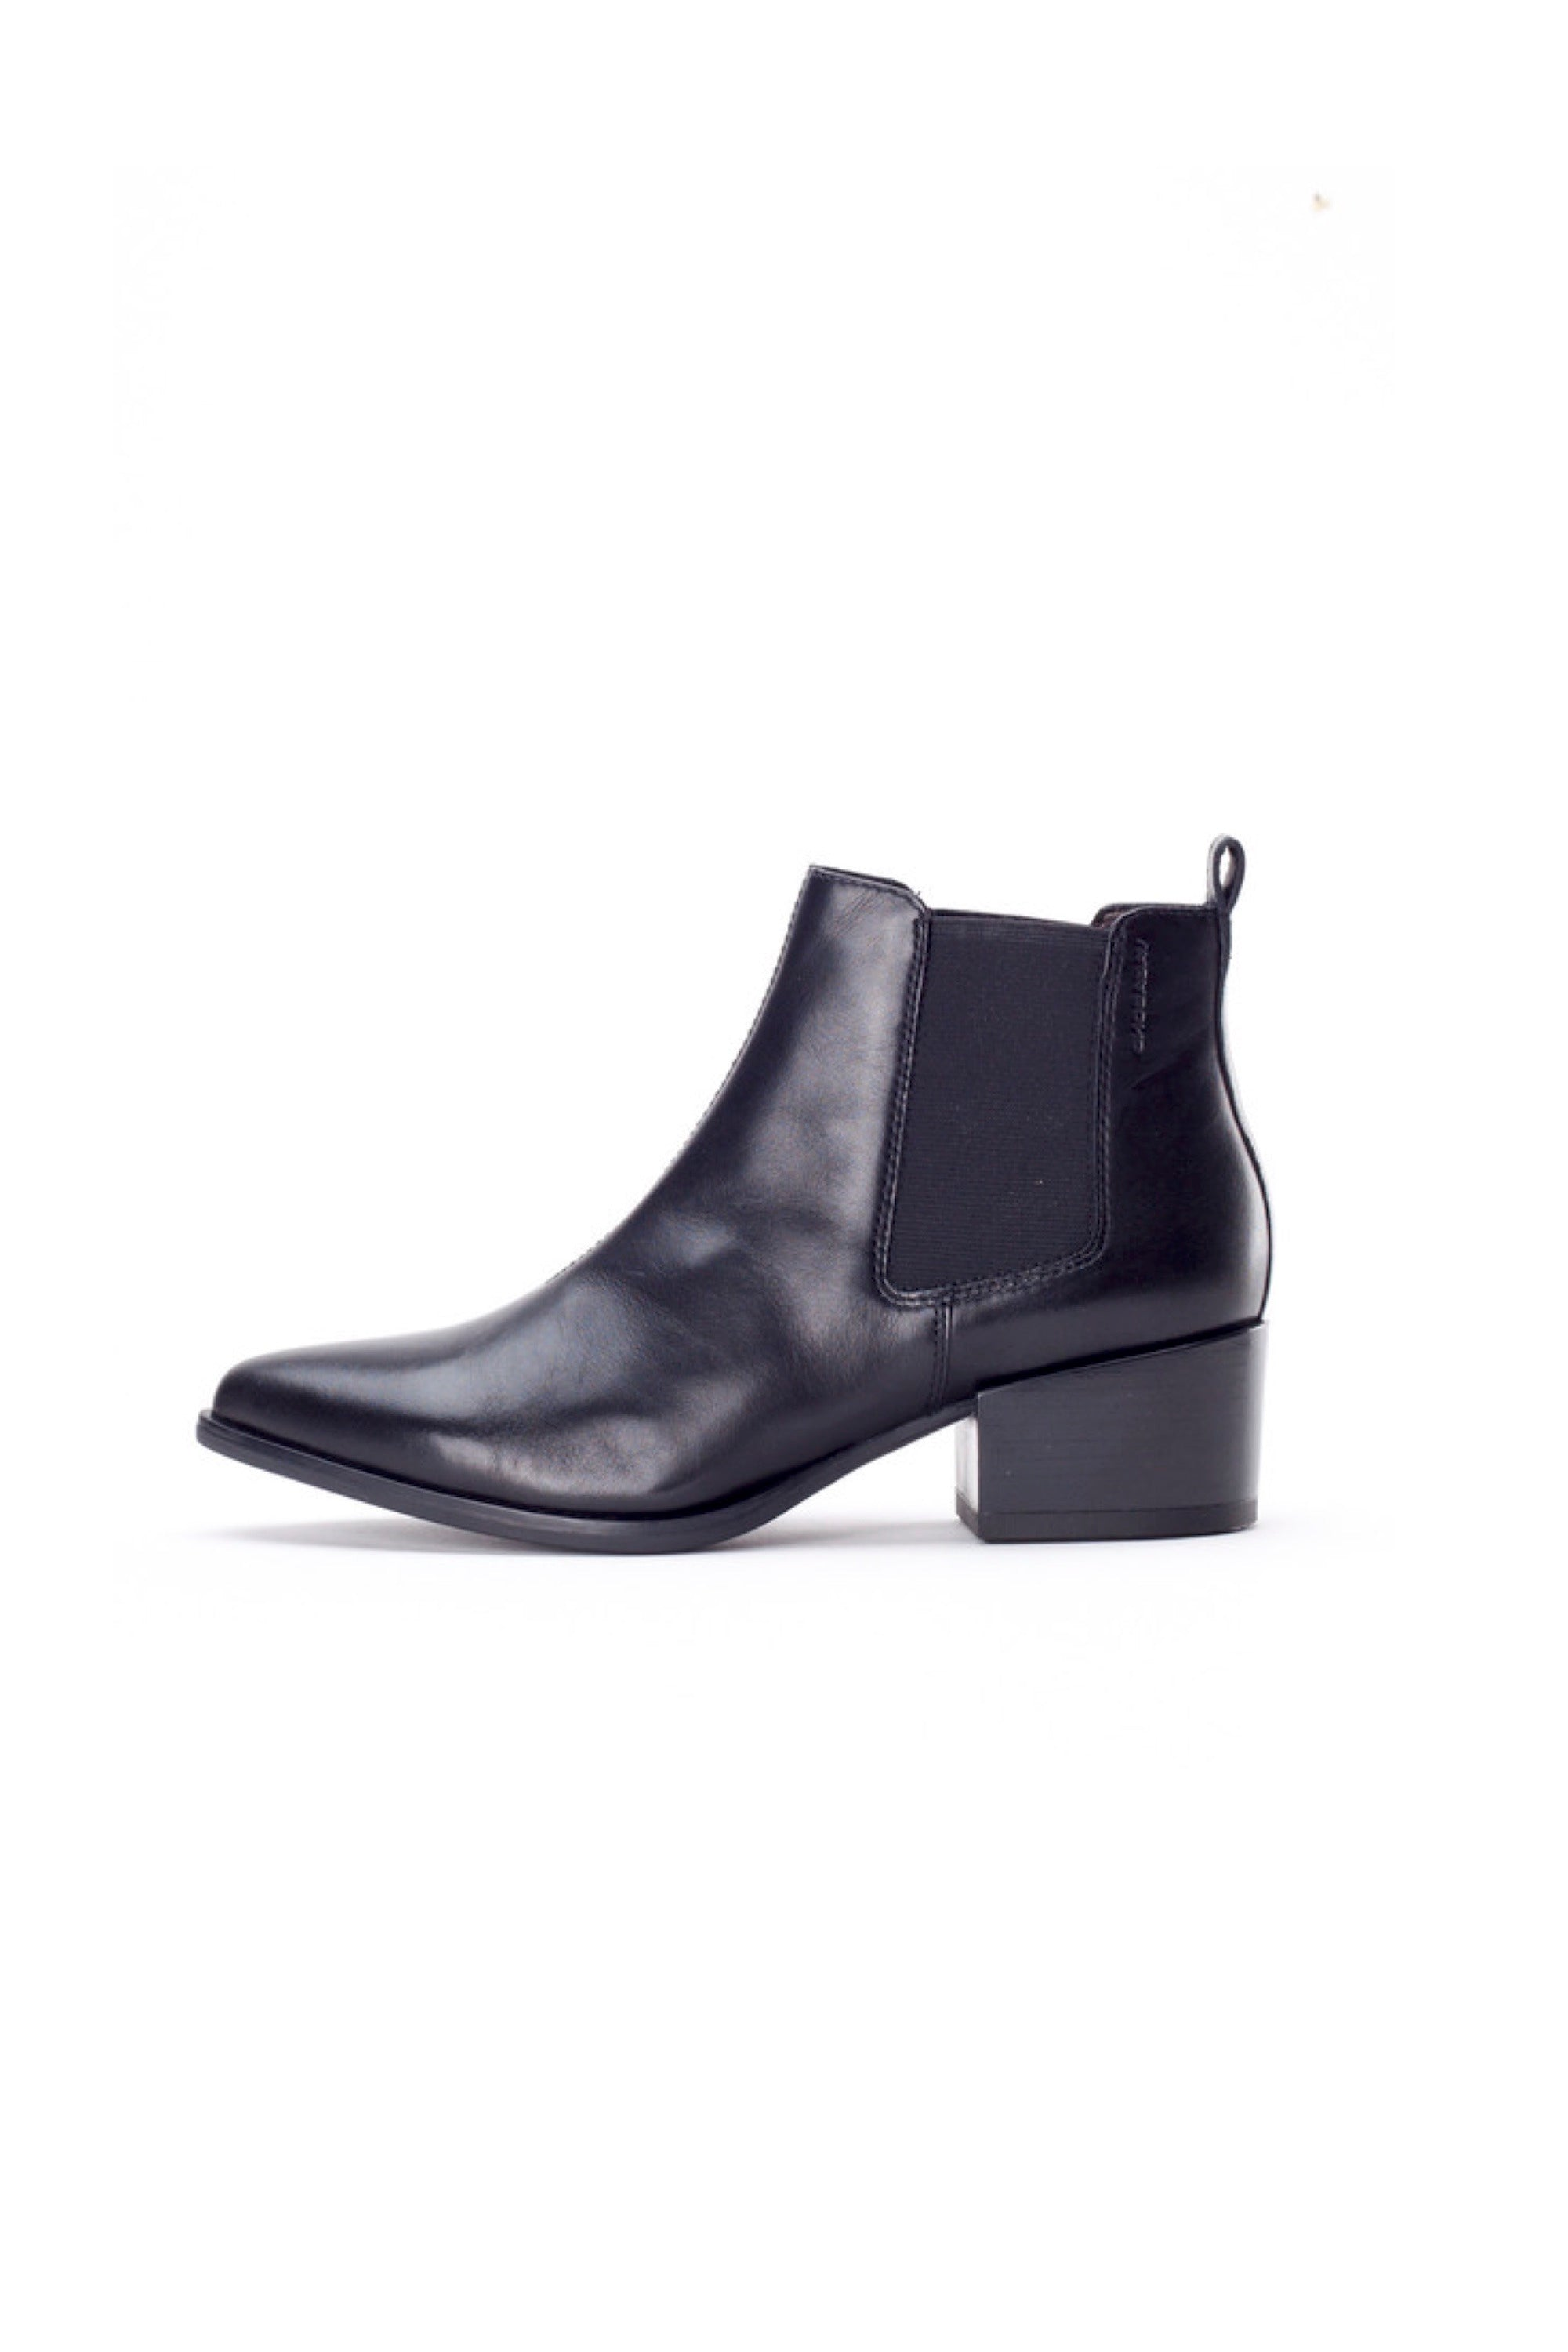 Vagabond Ankle Marja Boot Black Leather